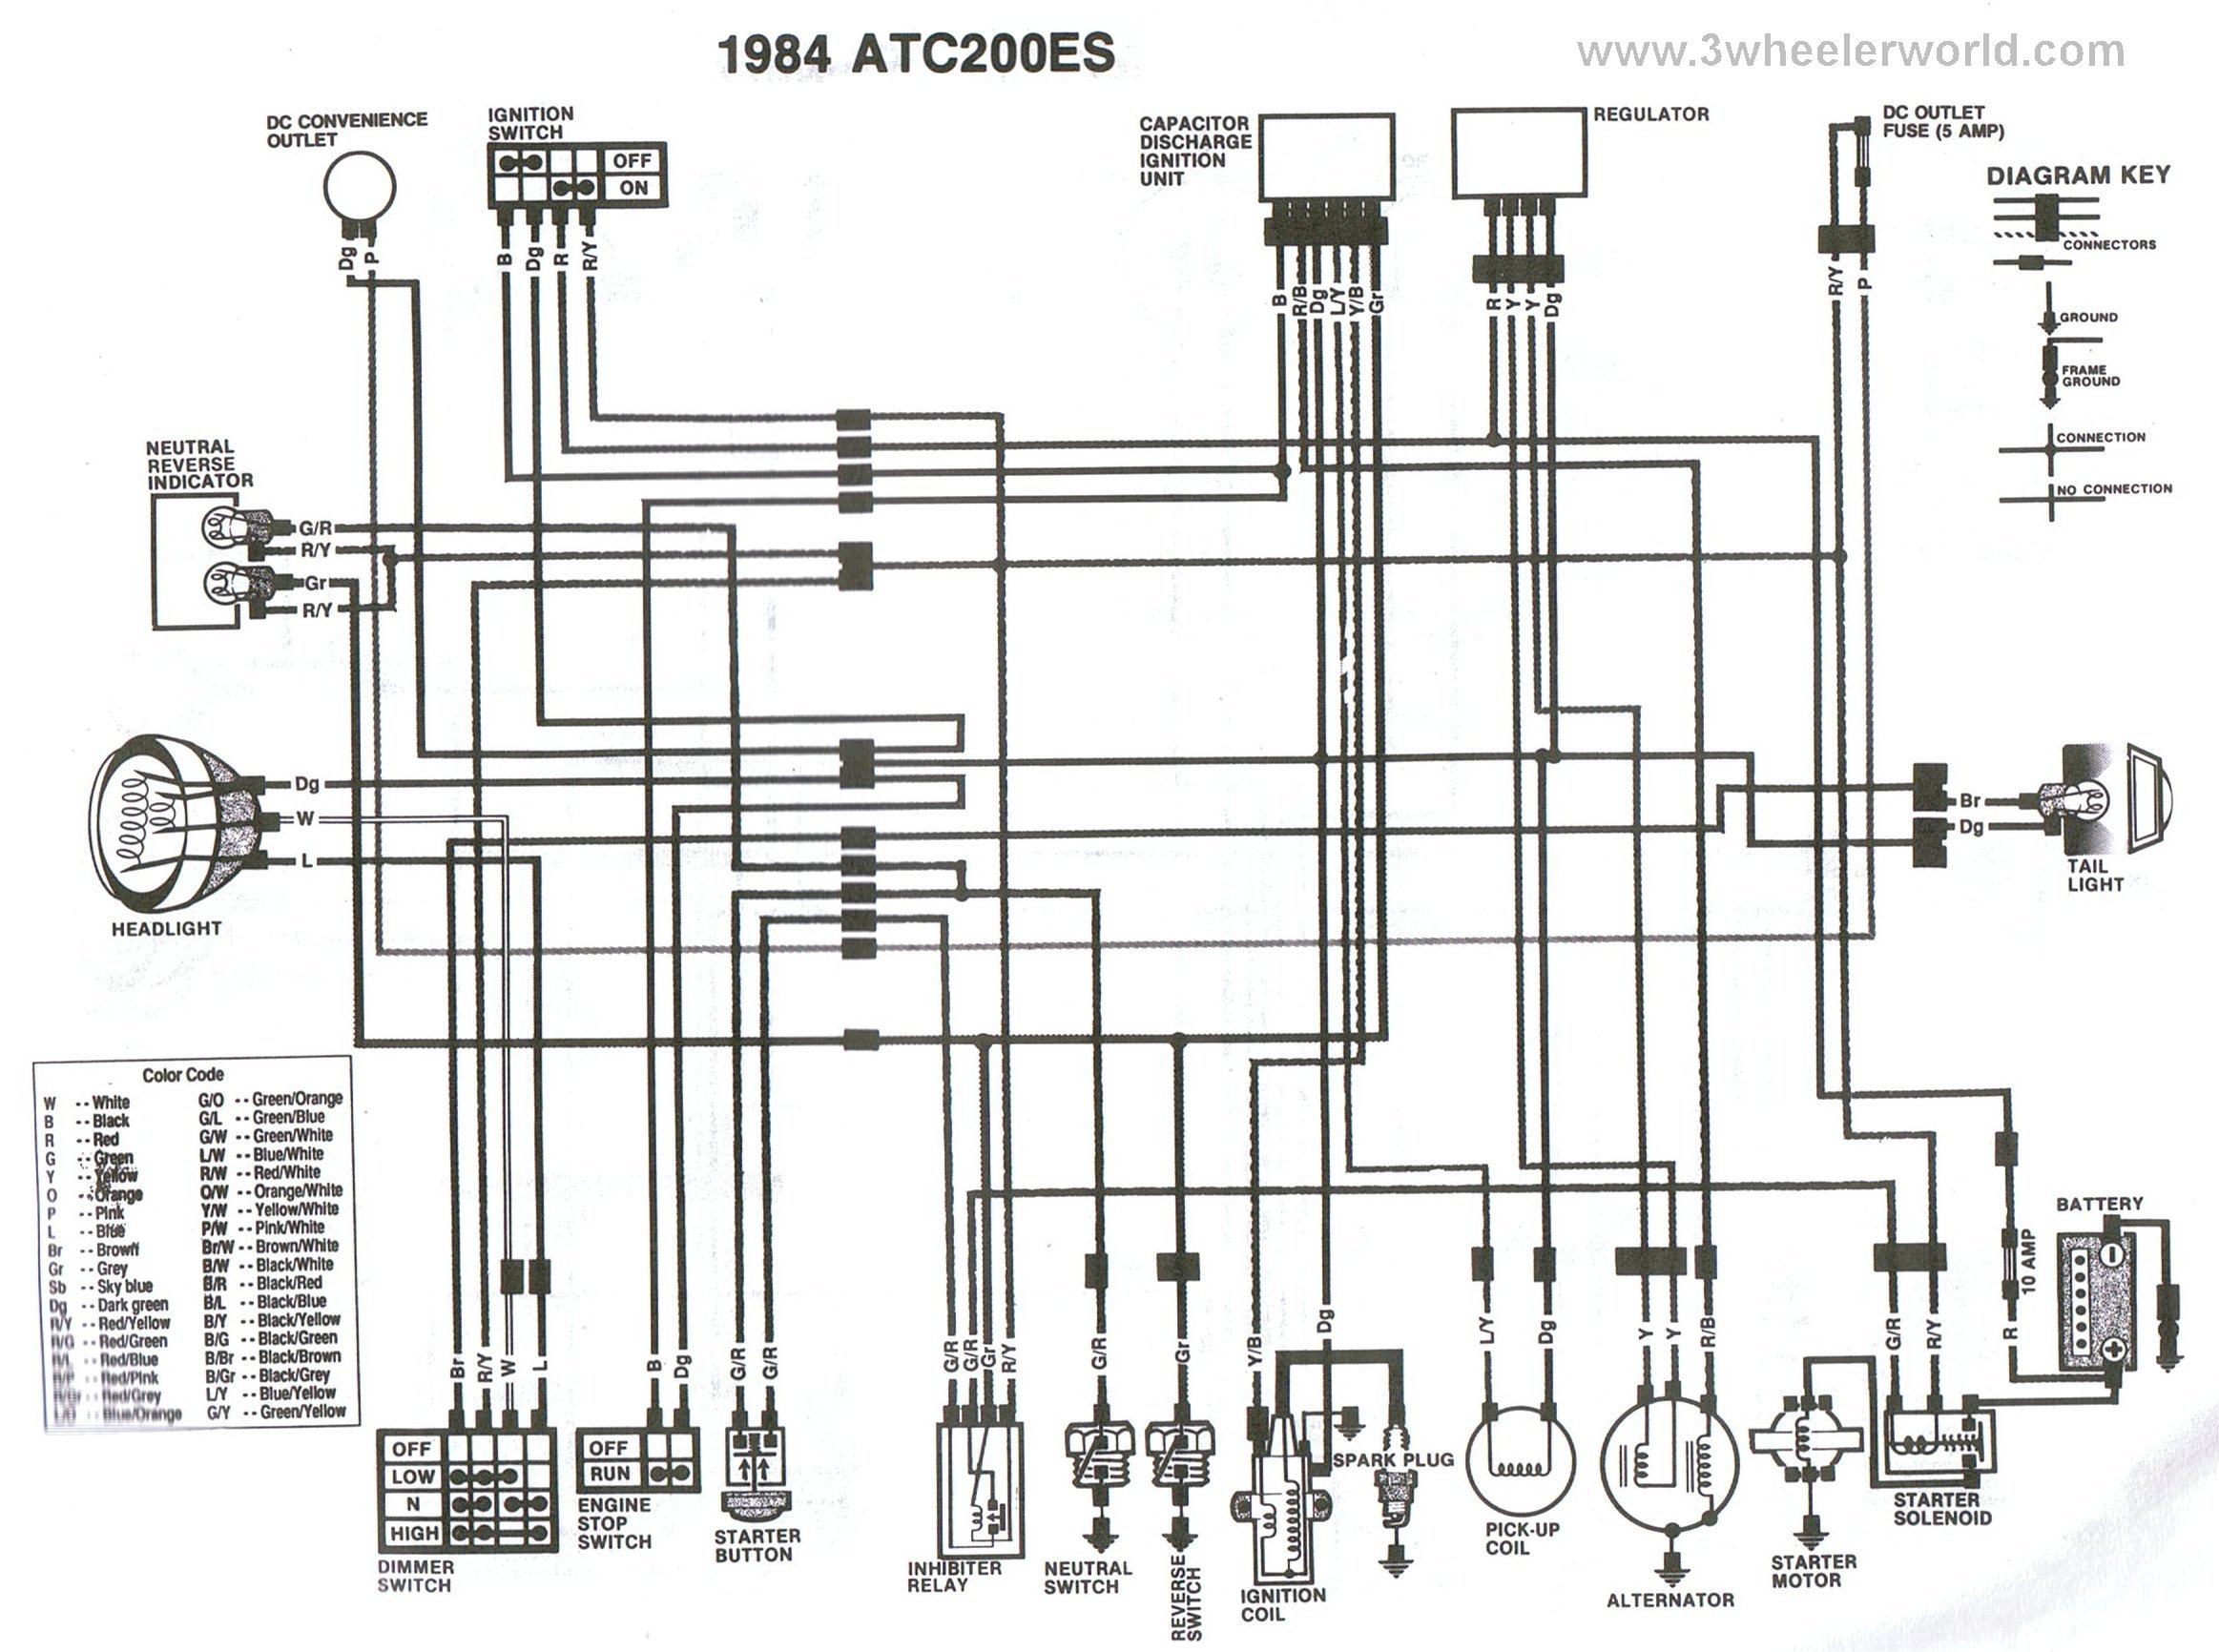 atc wiring diagram atc image wiring diagram honda atc 200 wiring diagram honda image wiring on atc 200 wiring diagram